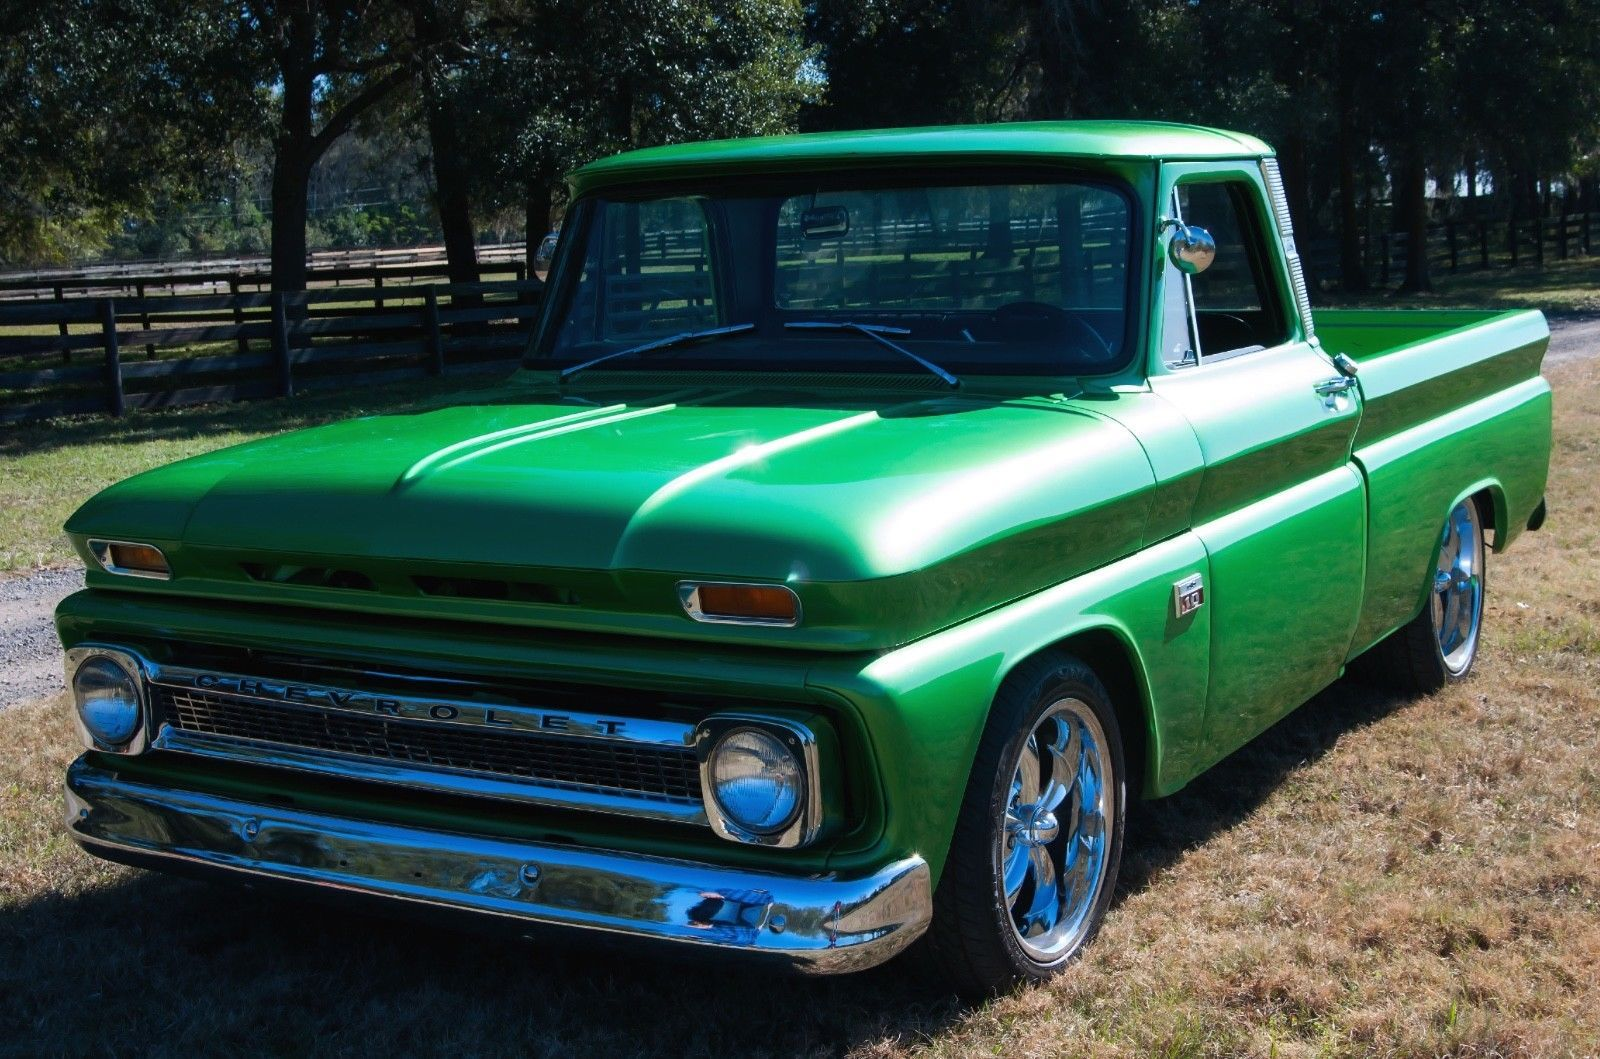 Awesome Great 1966 Chevrolet C10 Pickup Custom 1955 Chevy Stepside Truck Restromod Only 1245 Miles Since Complete Restro 2017 2018